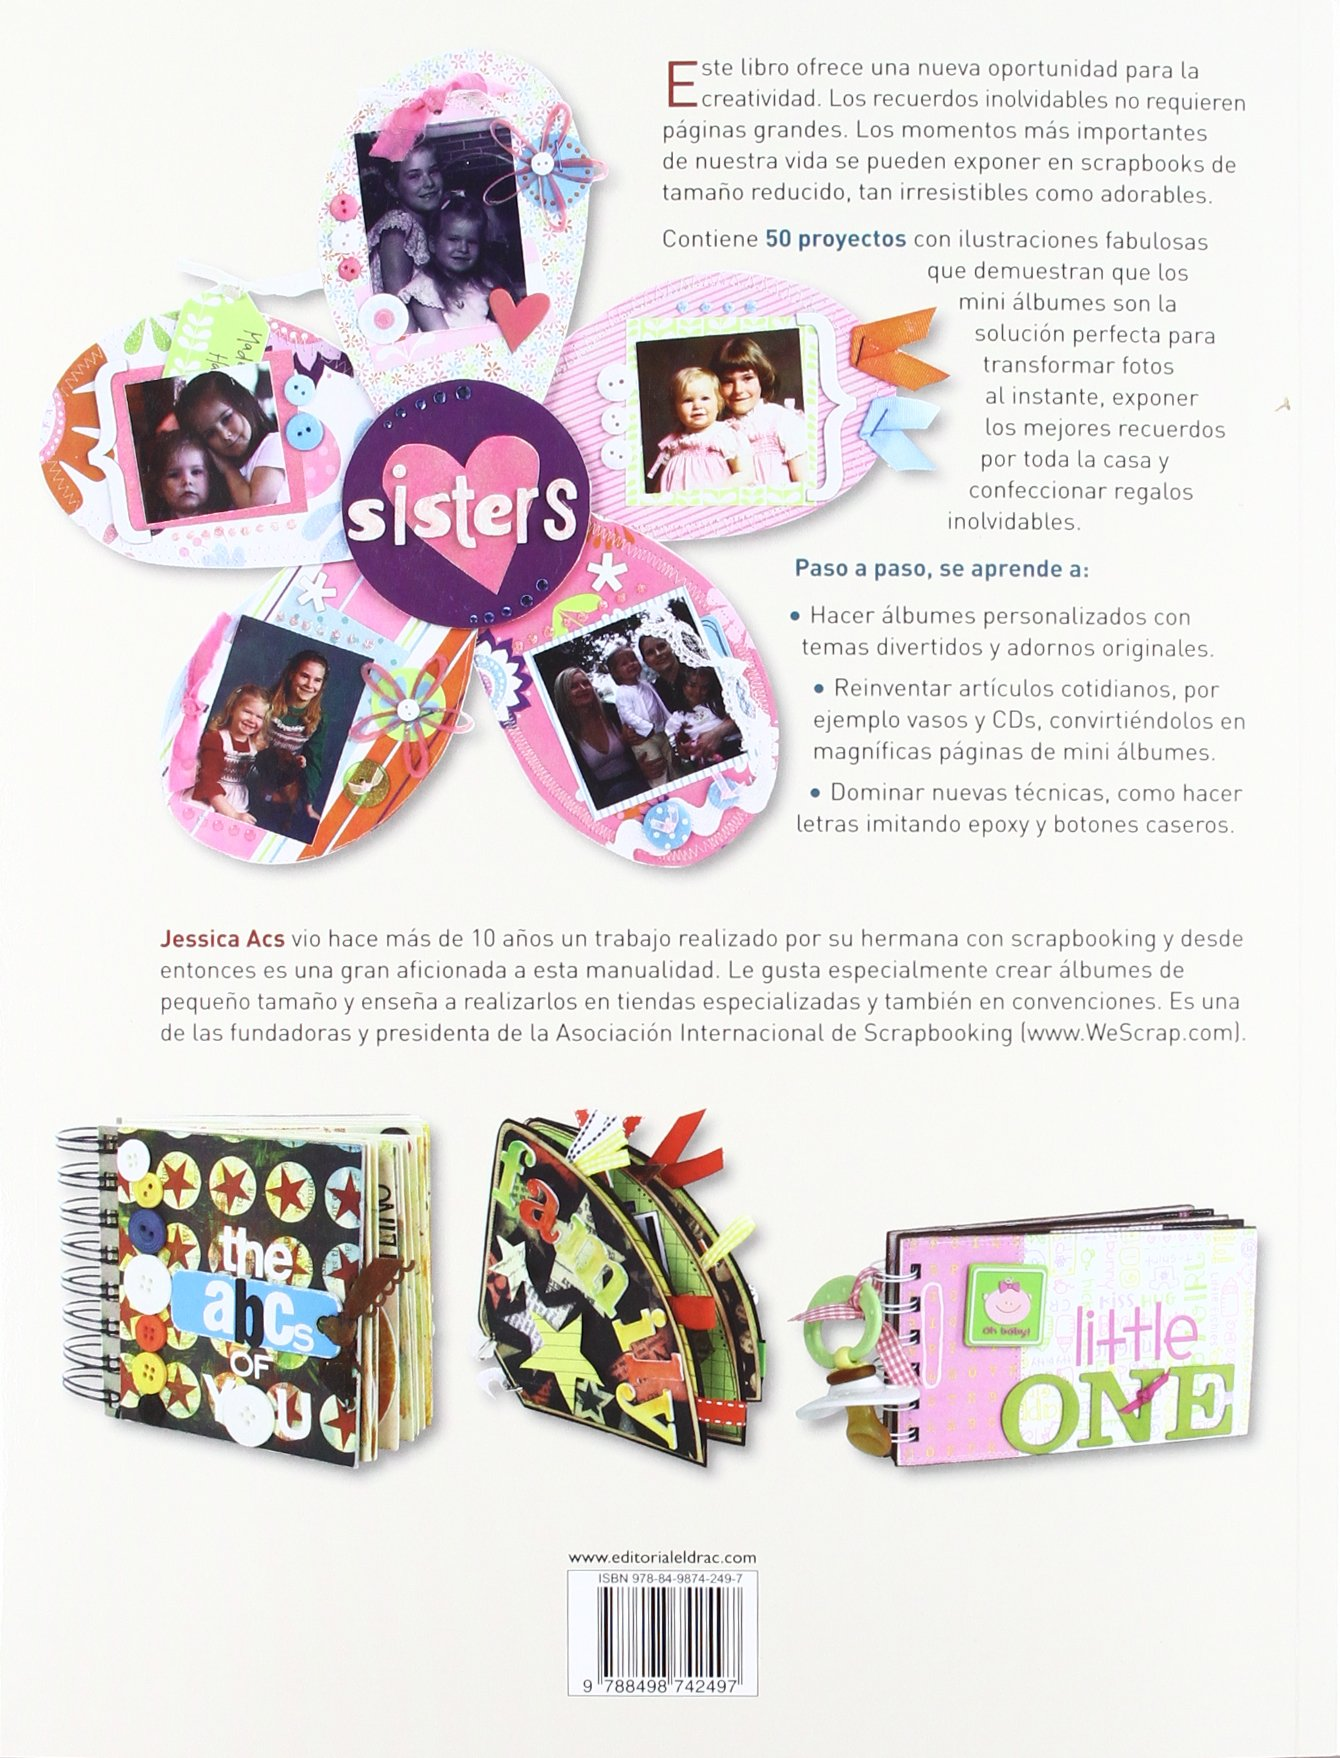 Hacer y decorar mini álbumes con scrapbooking (Spanish Edition): Jessica Acs: 9788498742497: Amazon.com: Books